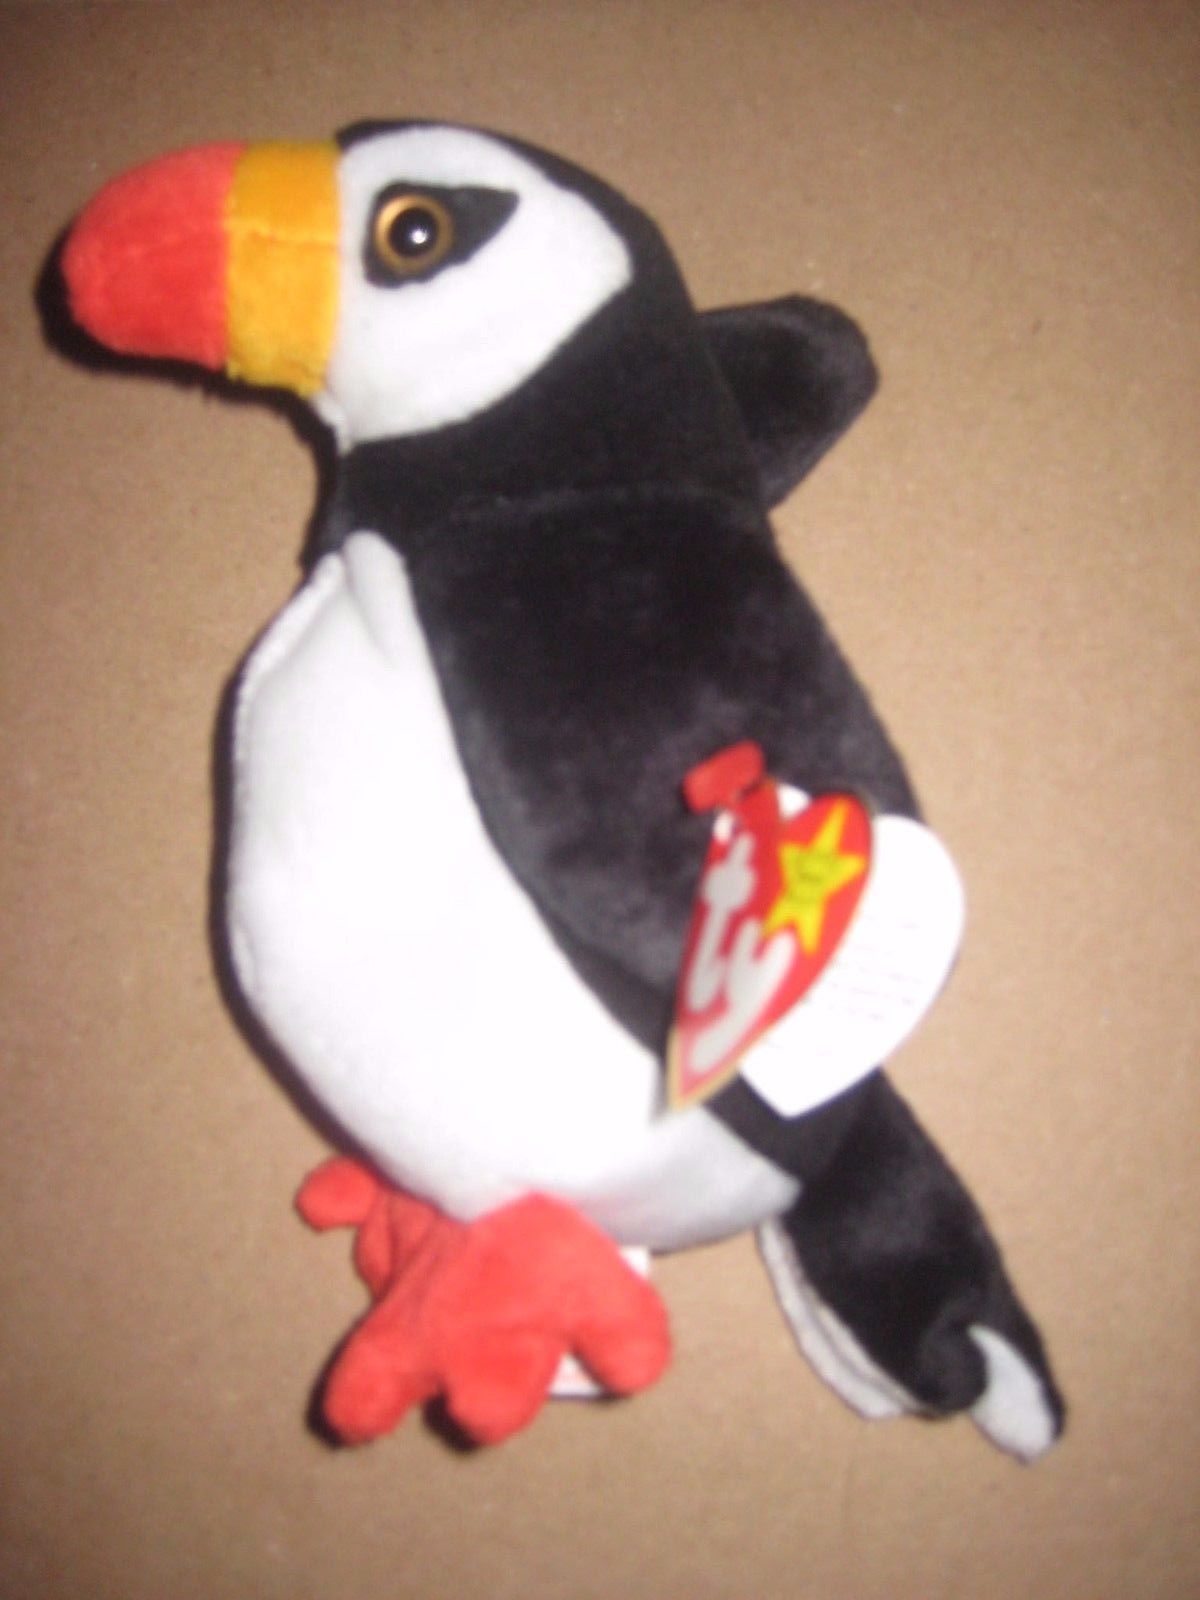 S l1600. S l1600. Retired 1997 TY BEANIE BABIES Plush Black 7inch PUFFER  The PUFFIN Bird BRAND NEW ... 717bdb411126